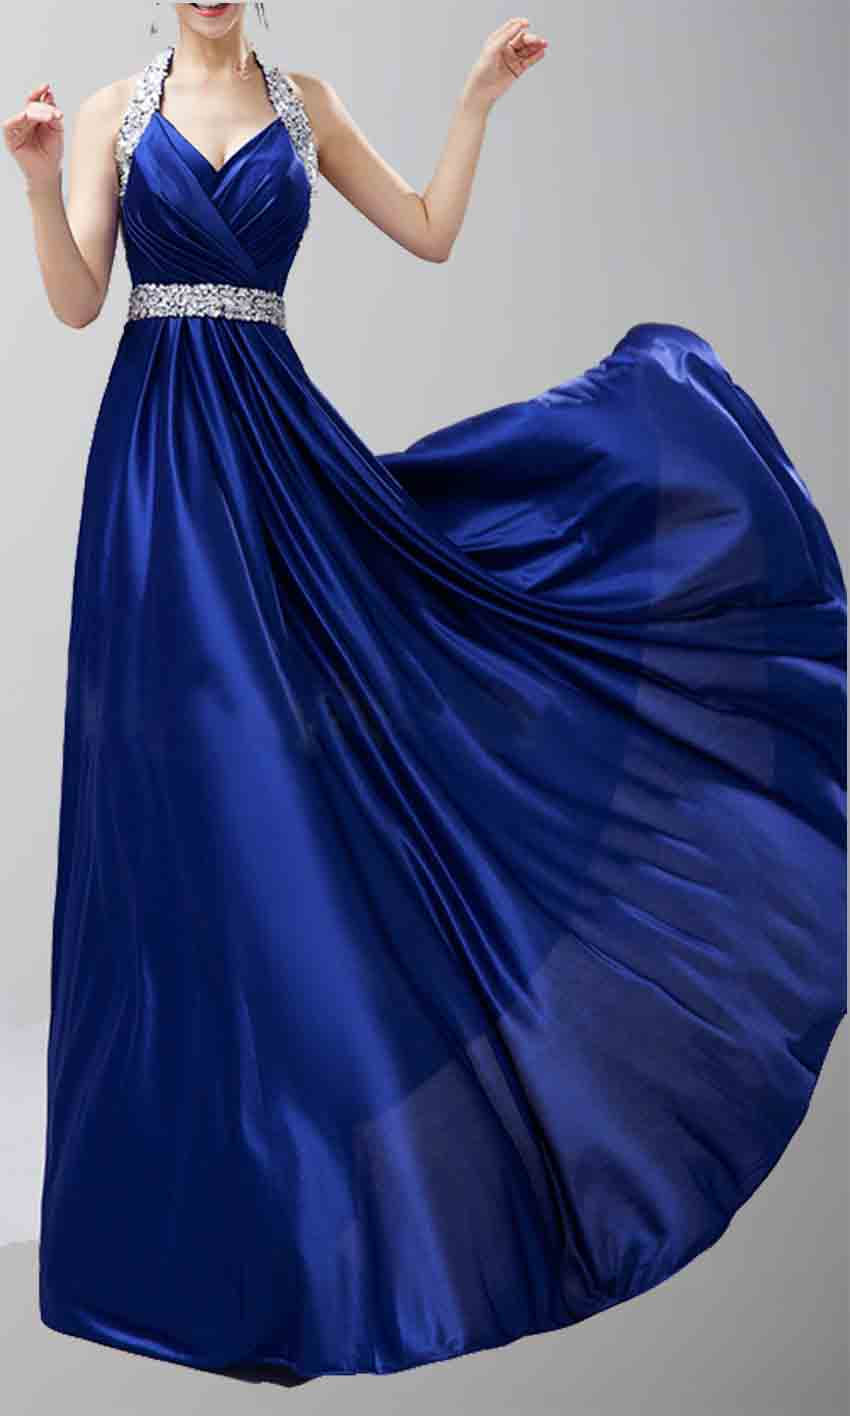 Blue Halter Neck Floor Length Satin Prom Dress KSP156 [KSP156] - £98.00 : Cheap Prom Dresses Uk, Bridesmaid Dresses, 2014 Prom & Evening Dresses, Look for cheap elegant prom dresses 2014, cocktail gowns, or dresses for special occasions? kissprom.co.uk offers various bridesmaid dresses, evening dress, free shipping to UK etc.